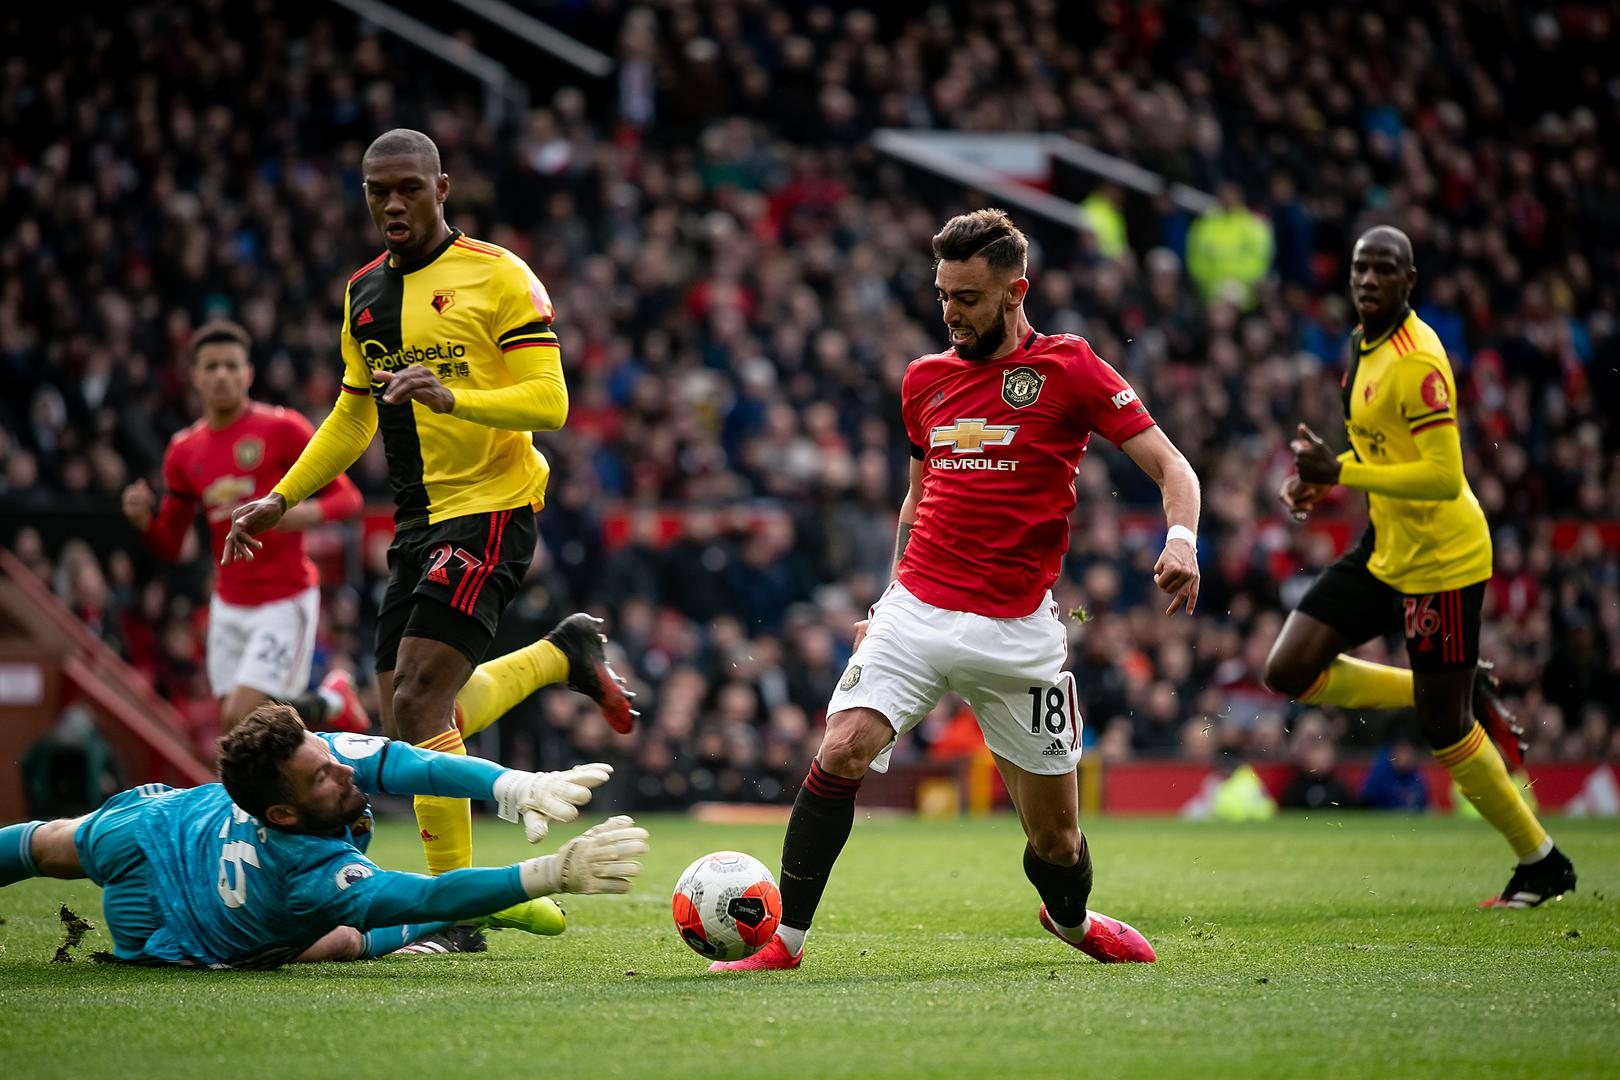 Manchester United Vs Watford English Premier League 23 February 2020 Manchester United Manchester United